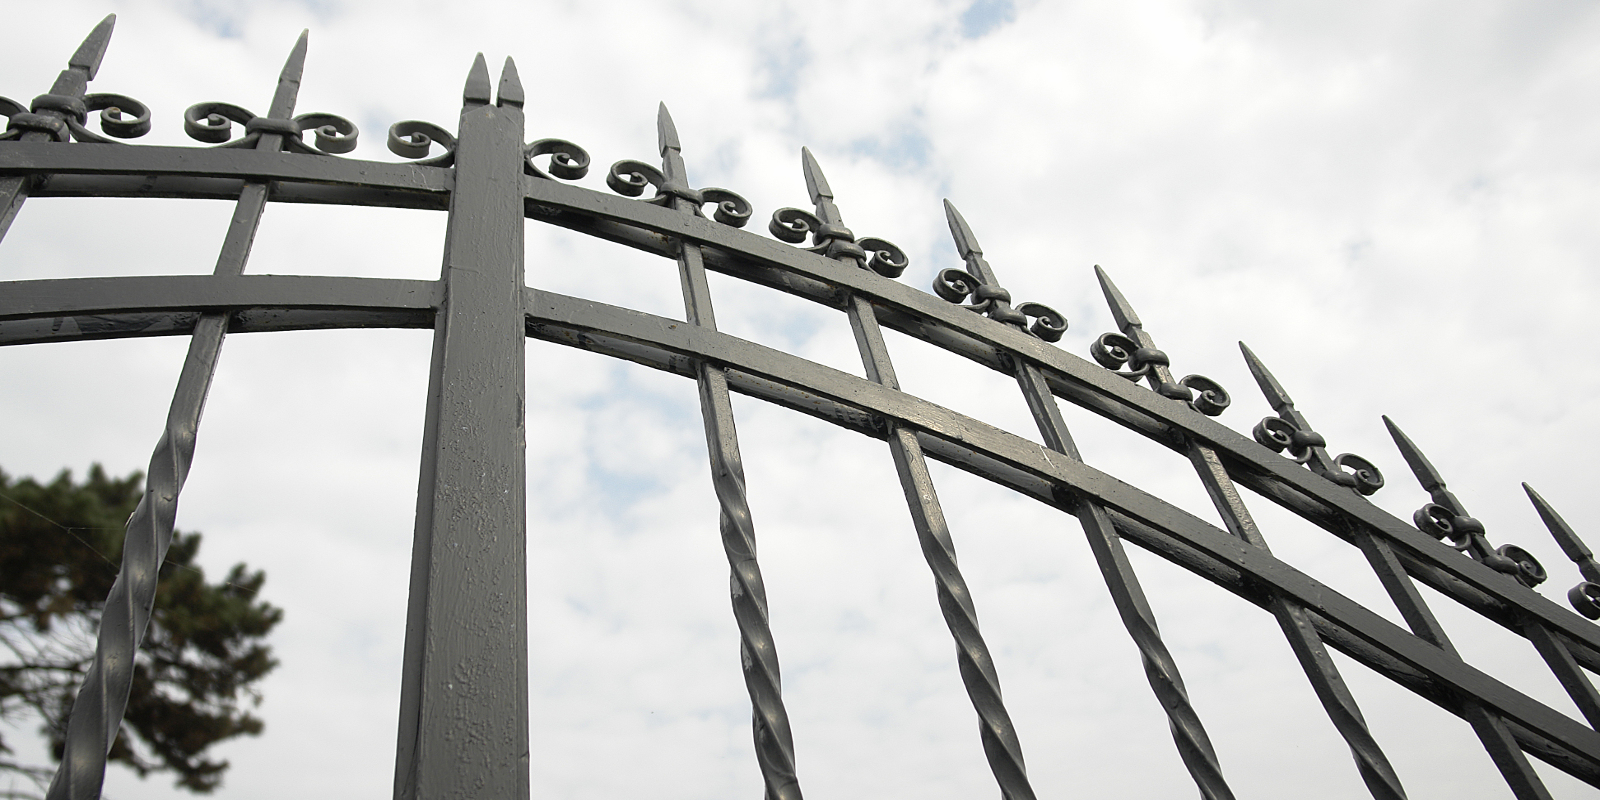 Iron Gate Against Overcast Sky